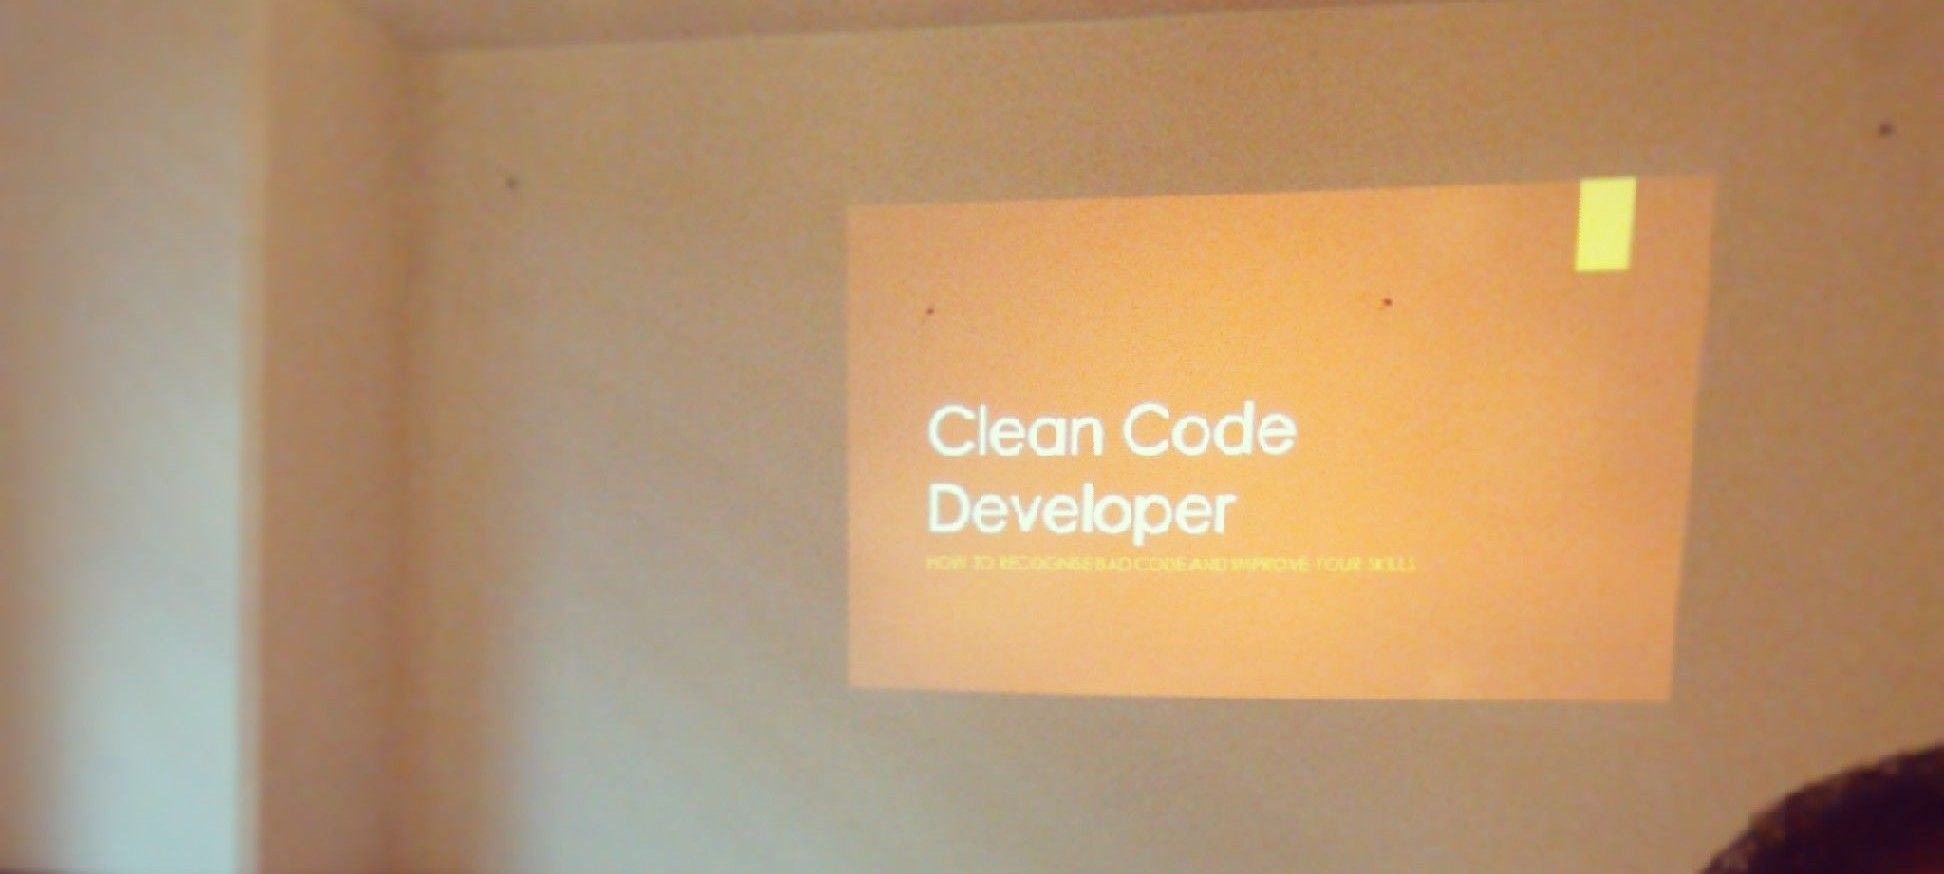 MSCC: Clean Code Development & Flexible work environment